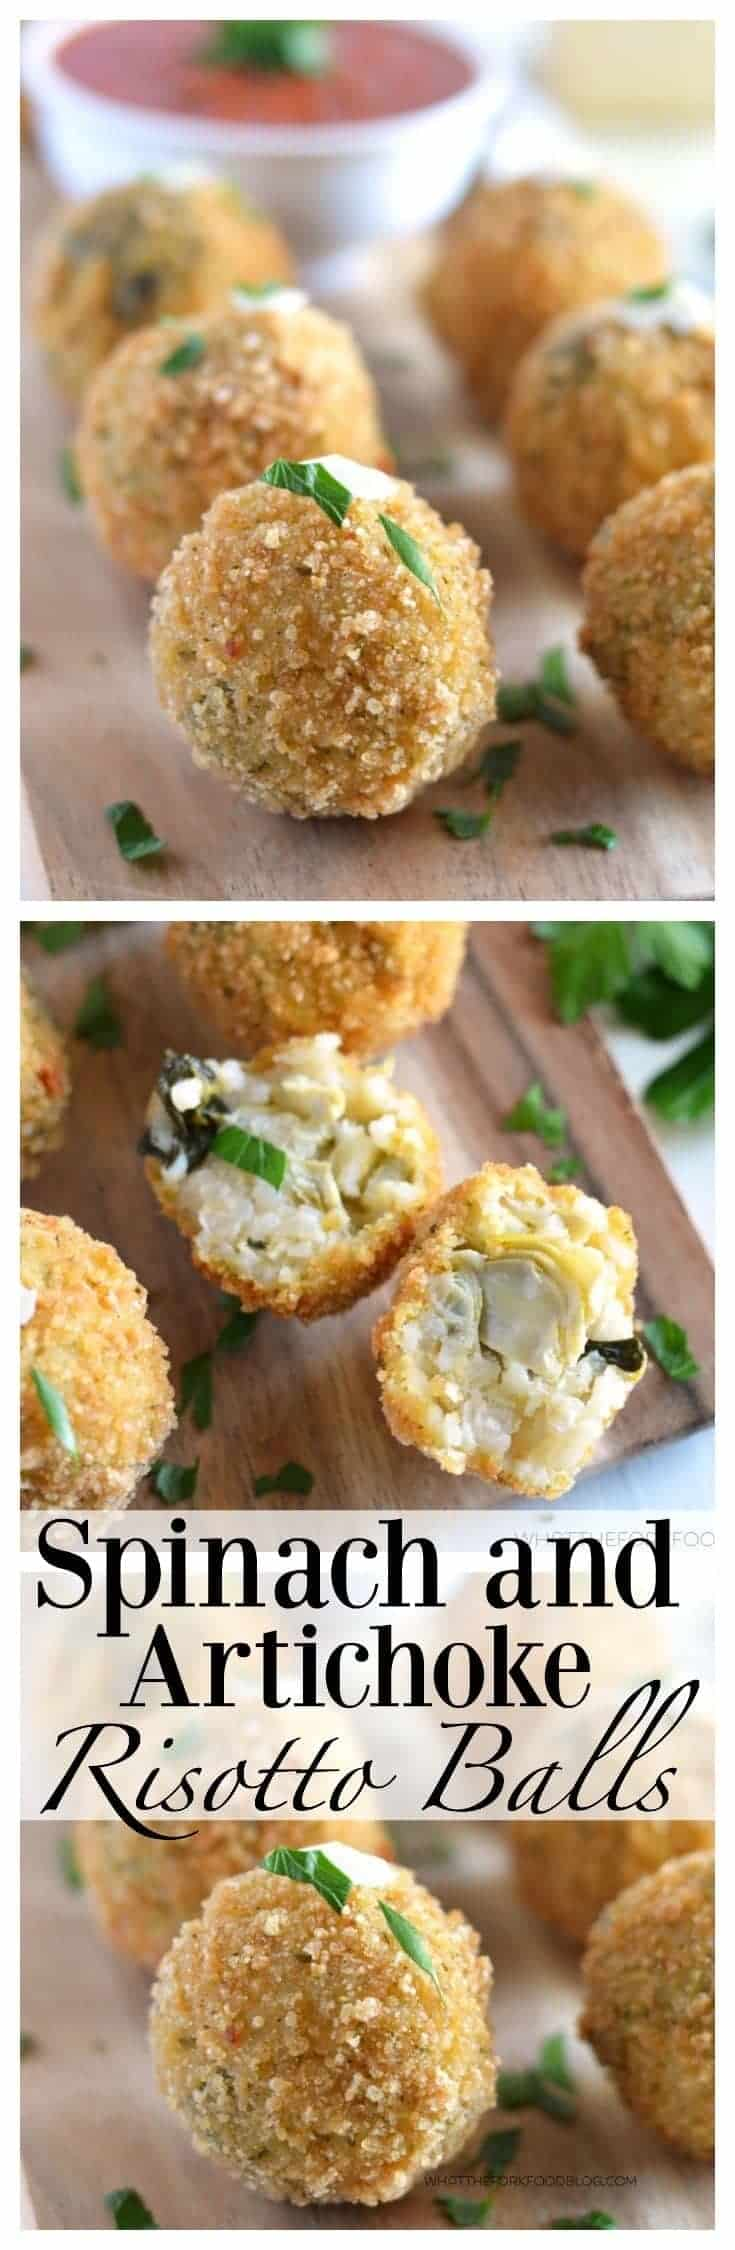 Crispy Fried Spinach and Artichoke Risotto Balls (gluten free) from What The Fork Food Blog | whattheforkfoodblog.com